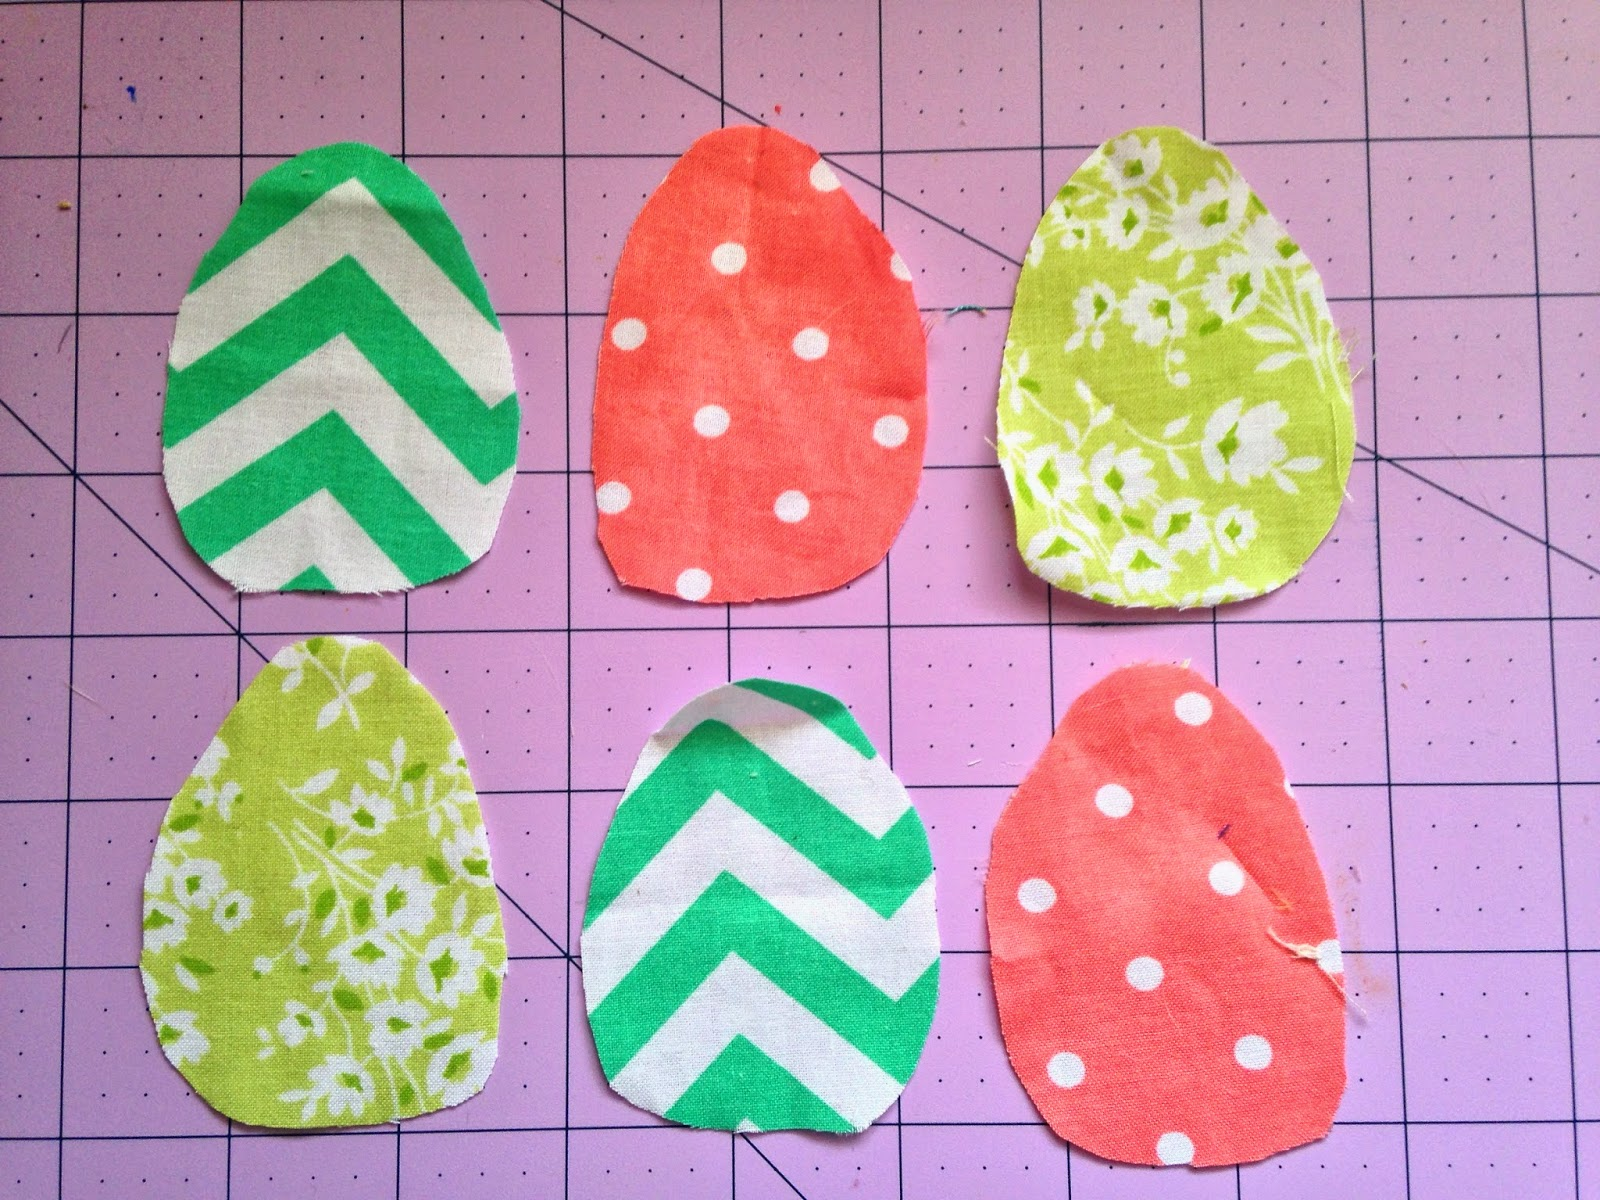 For The Next Project I Used Large Egg Template To Cut Two Eggs Out Of Felt Then Added A Slot One Just Big Enough Slide Some Candy In